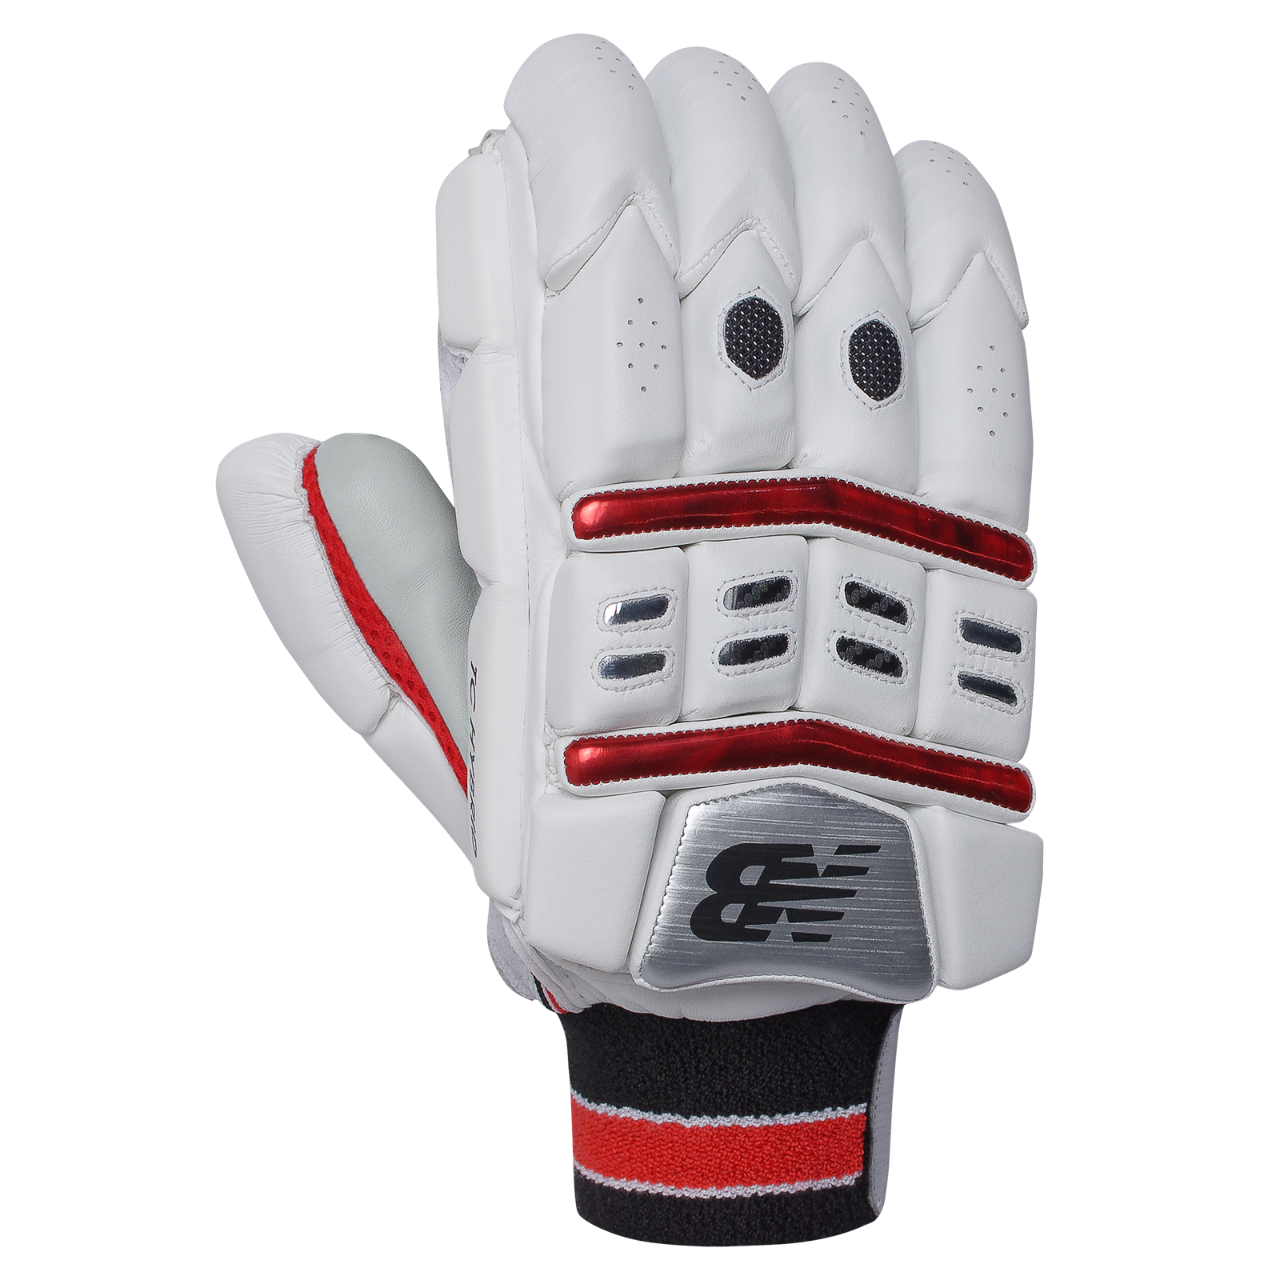 2021 New Balance TC Hybrid Batting Gloves